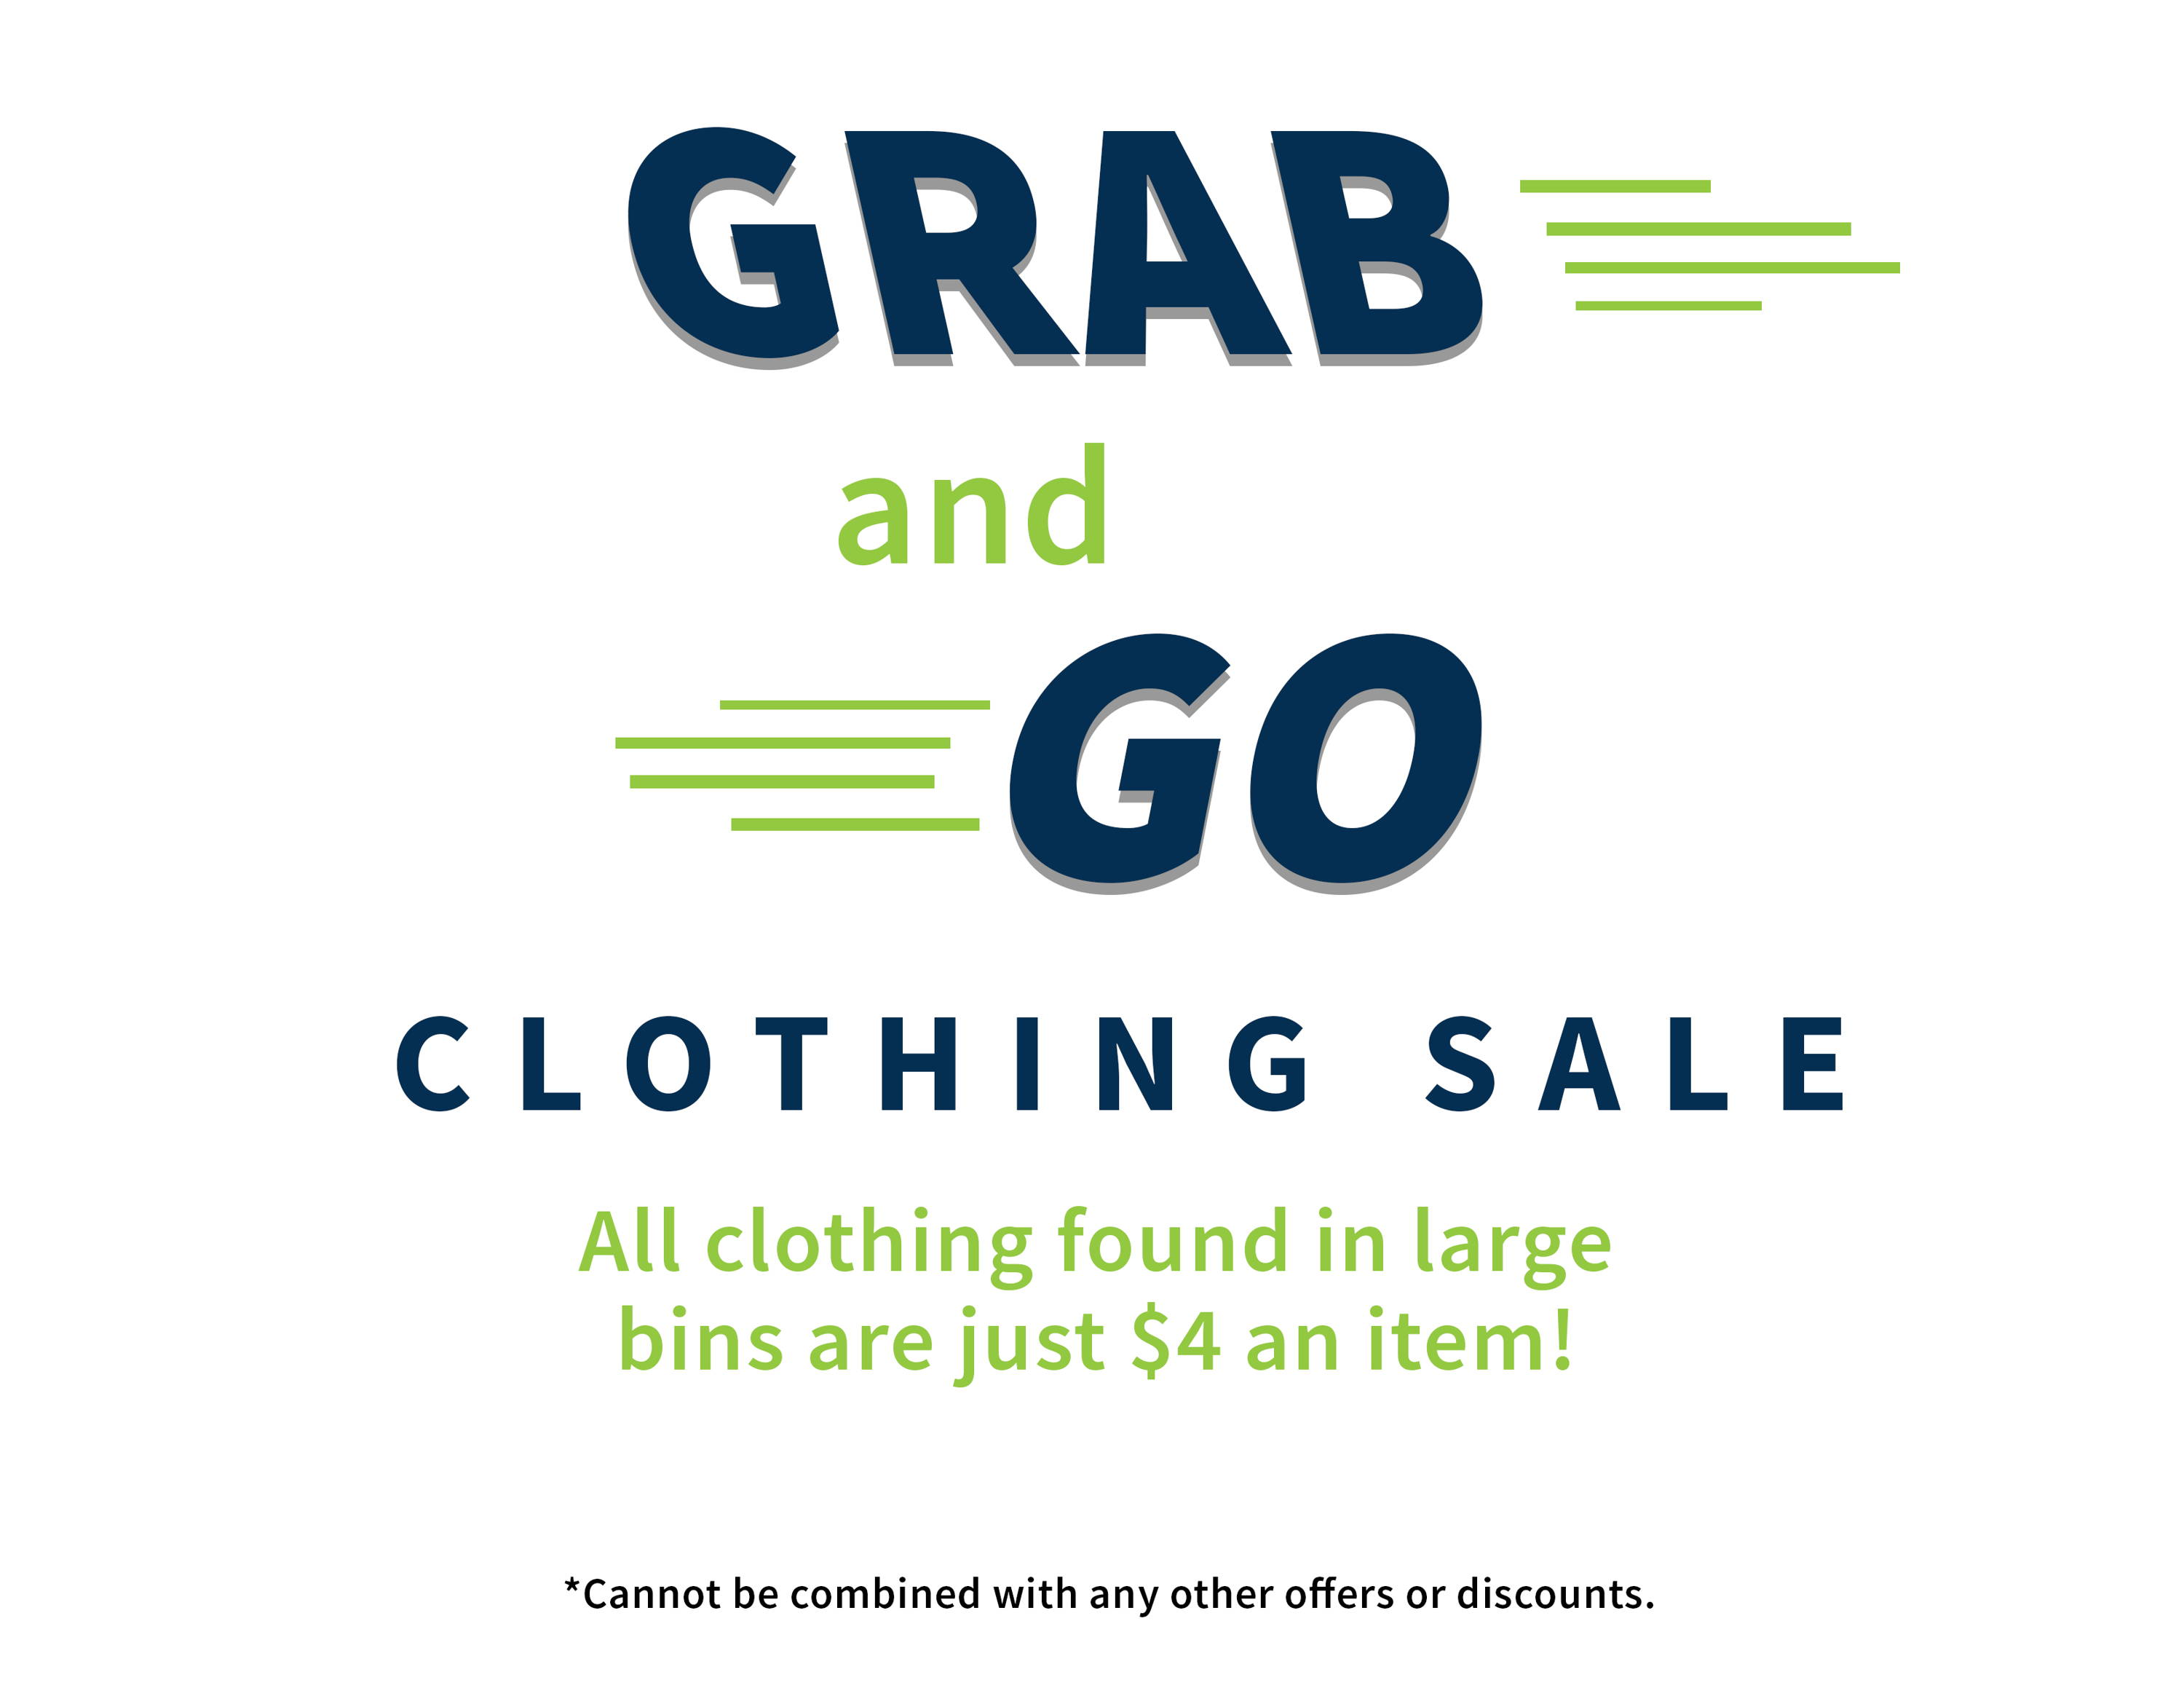 Grab and go clothing sale, $4 clothing sale, All clothing in large bins are $4